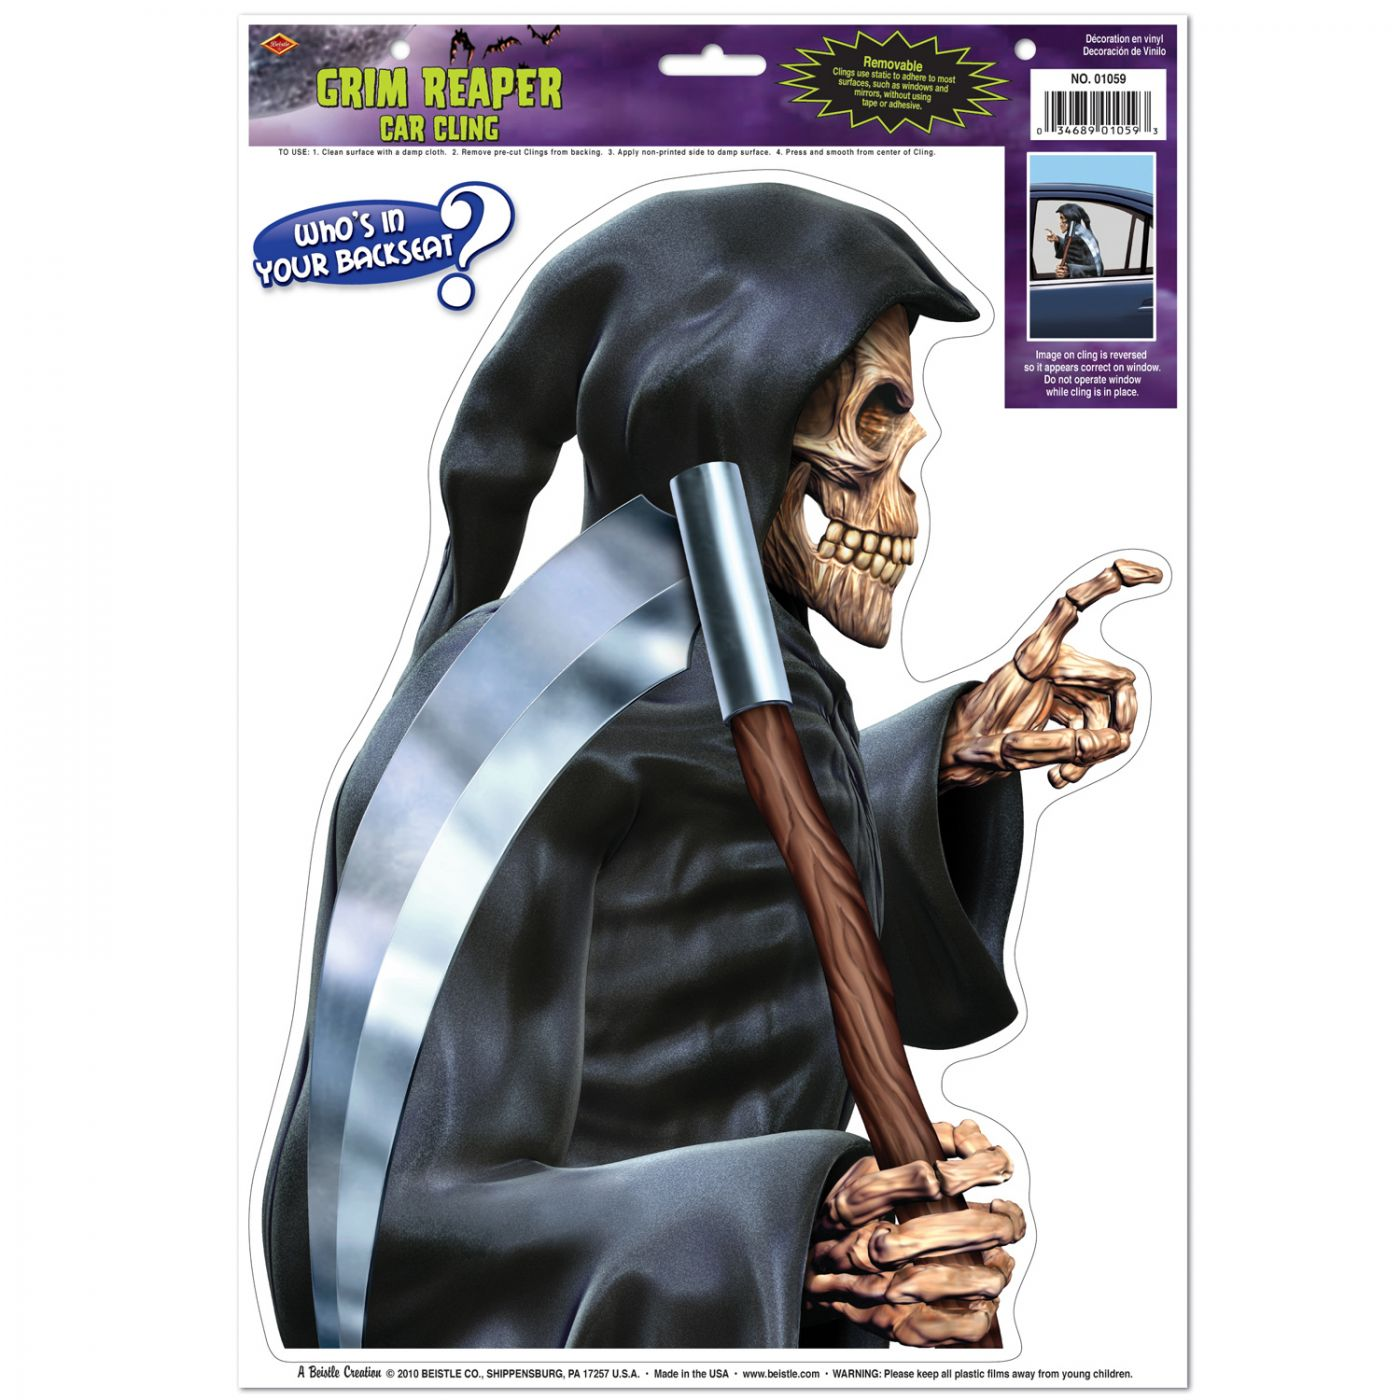 Grim Reaper Car Cling image